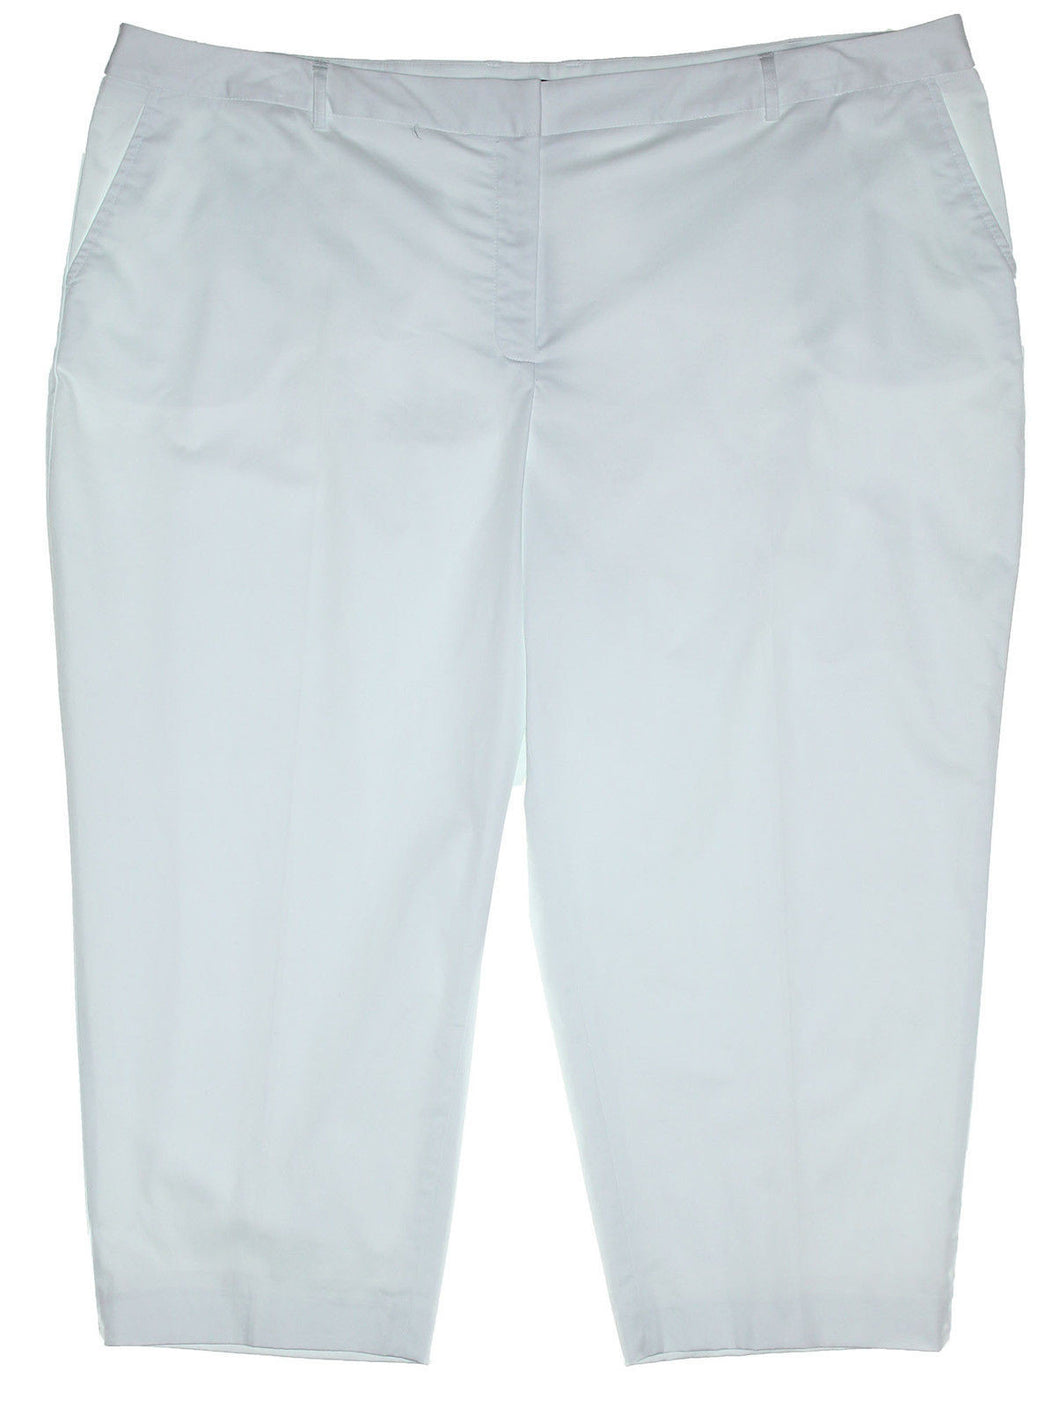 Jones New York White Runway Slim Cropped Casual Pants